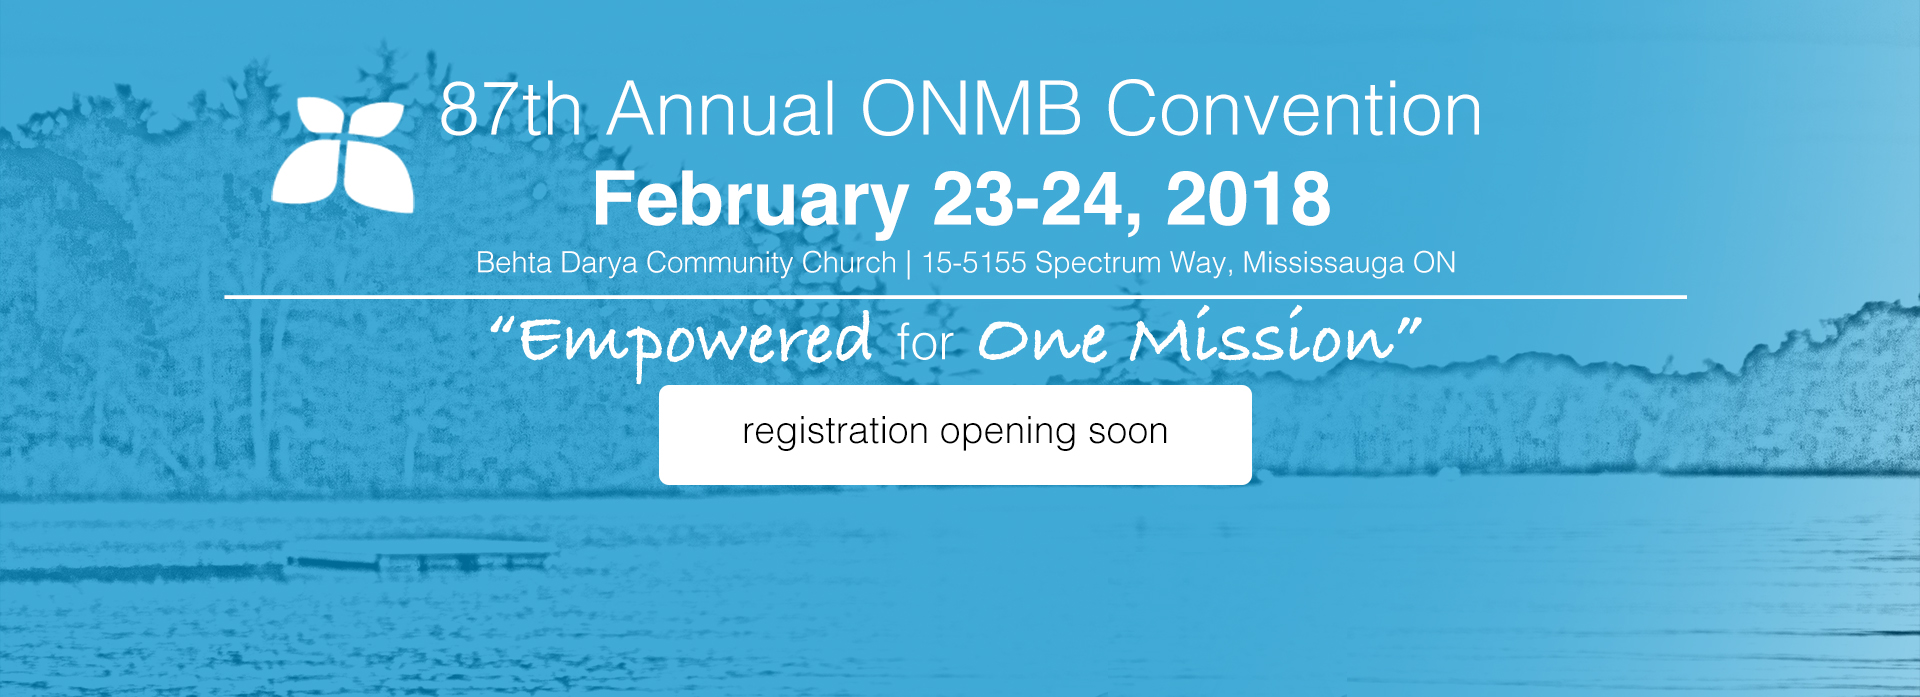 ONMB-Convention